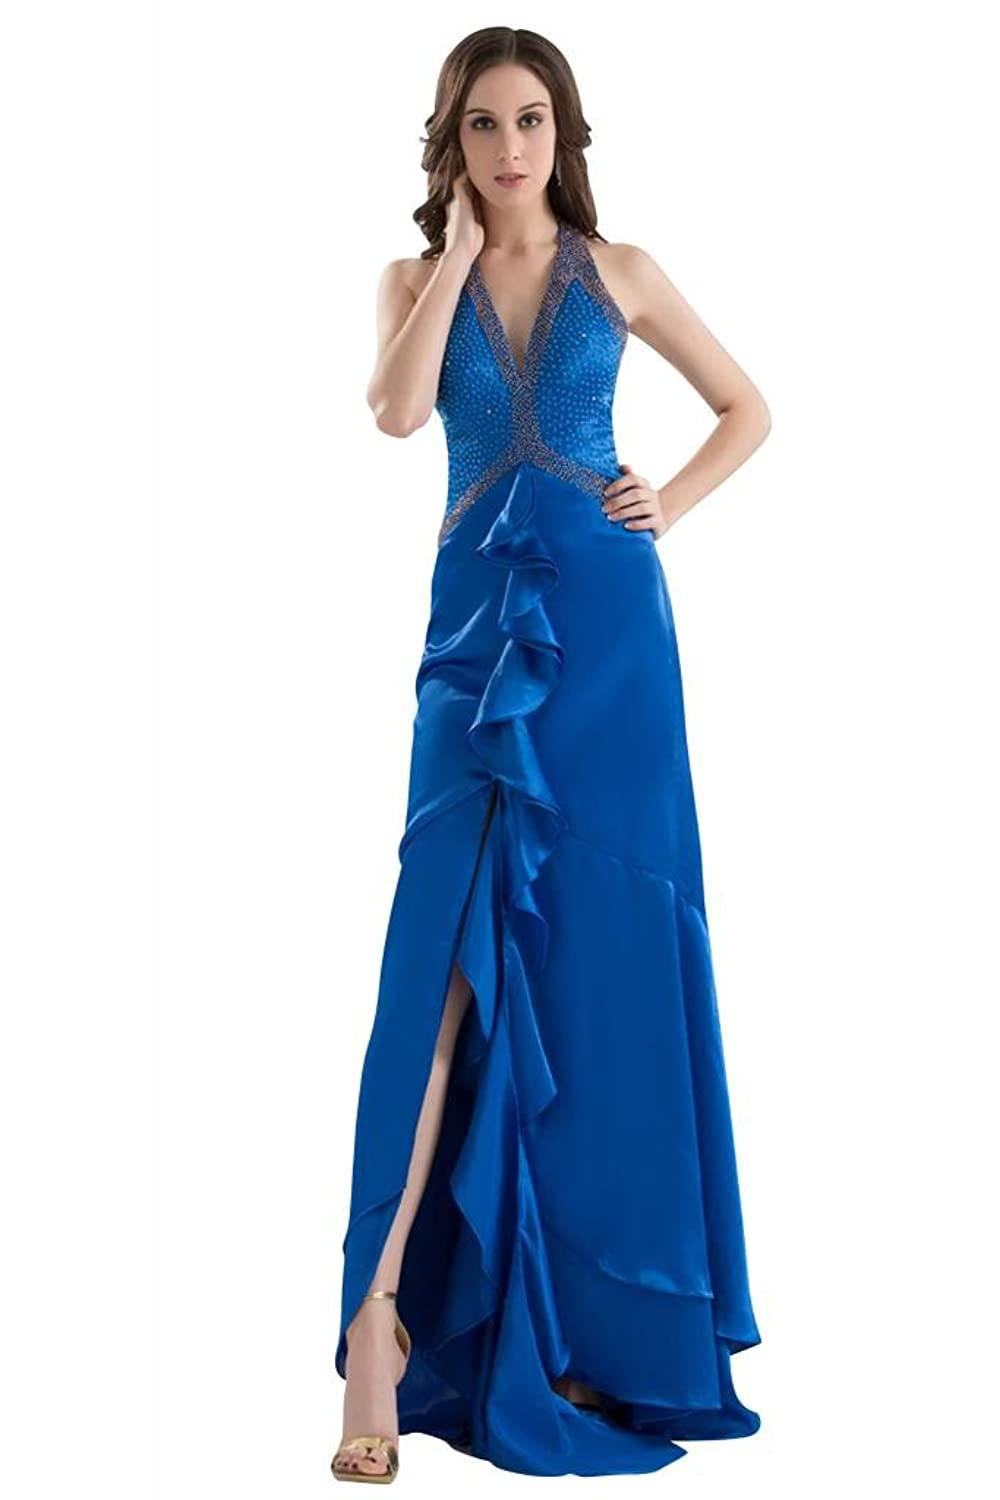 GEORGE BRIDE Halter Charming Evening Dress With Beaded Bodice